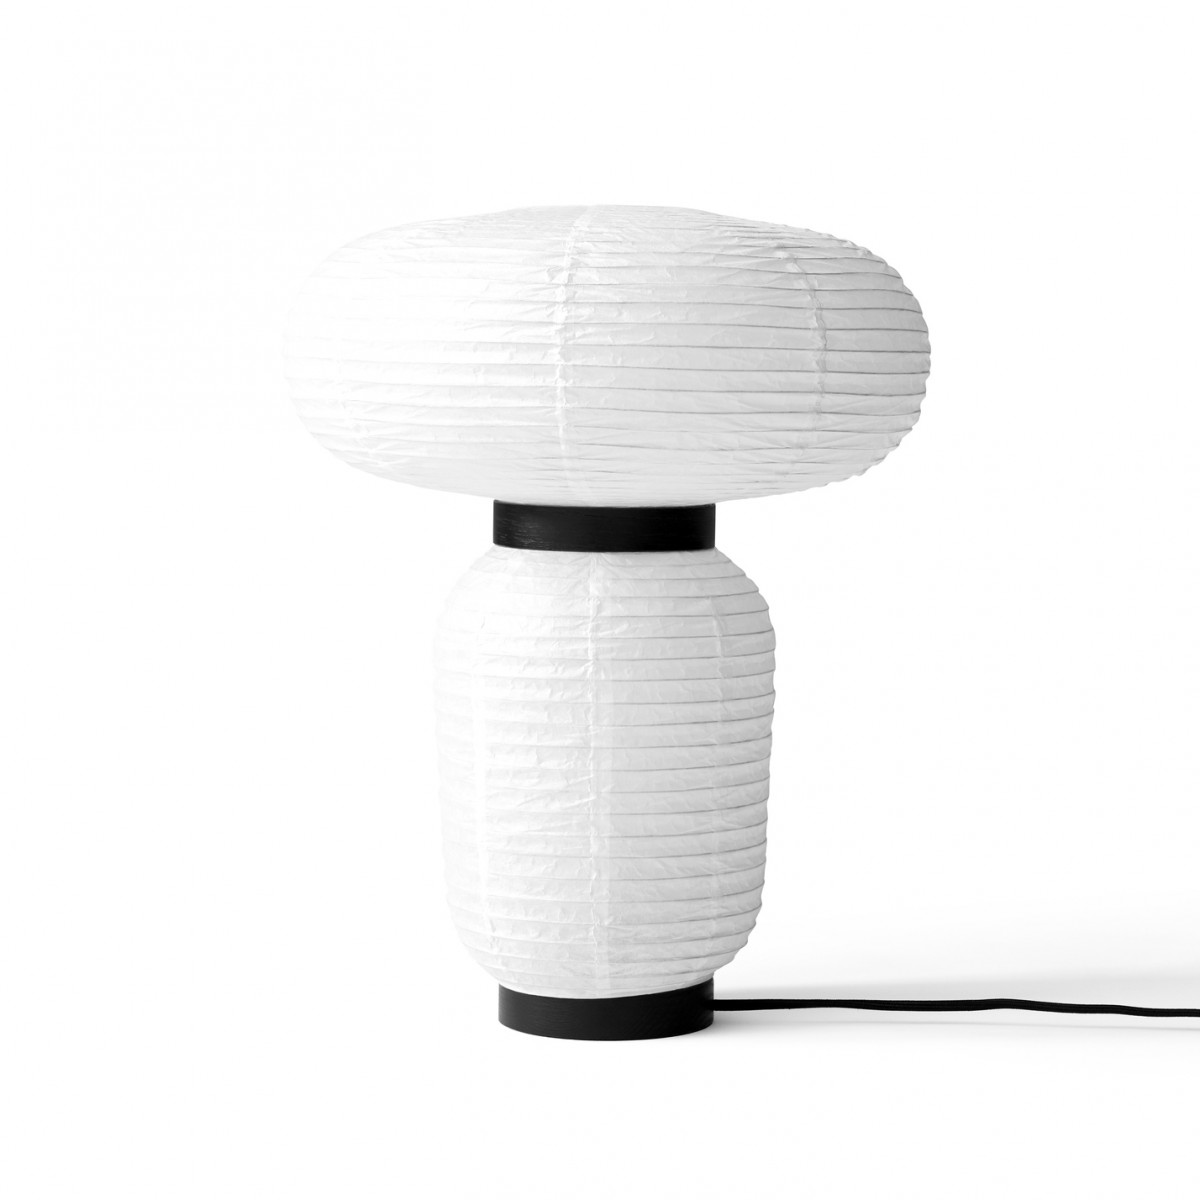 JH18 FORMAKAMI Table lamp Lamp by &Tradition.